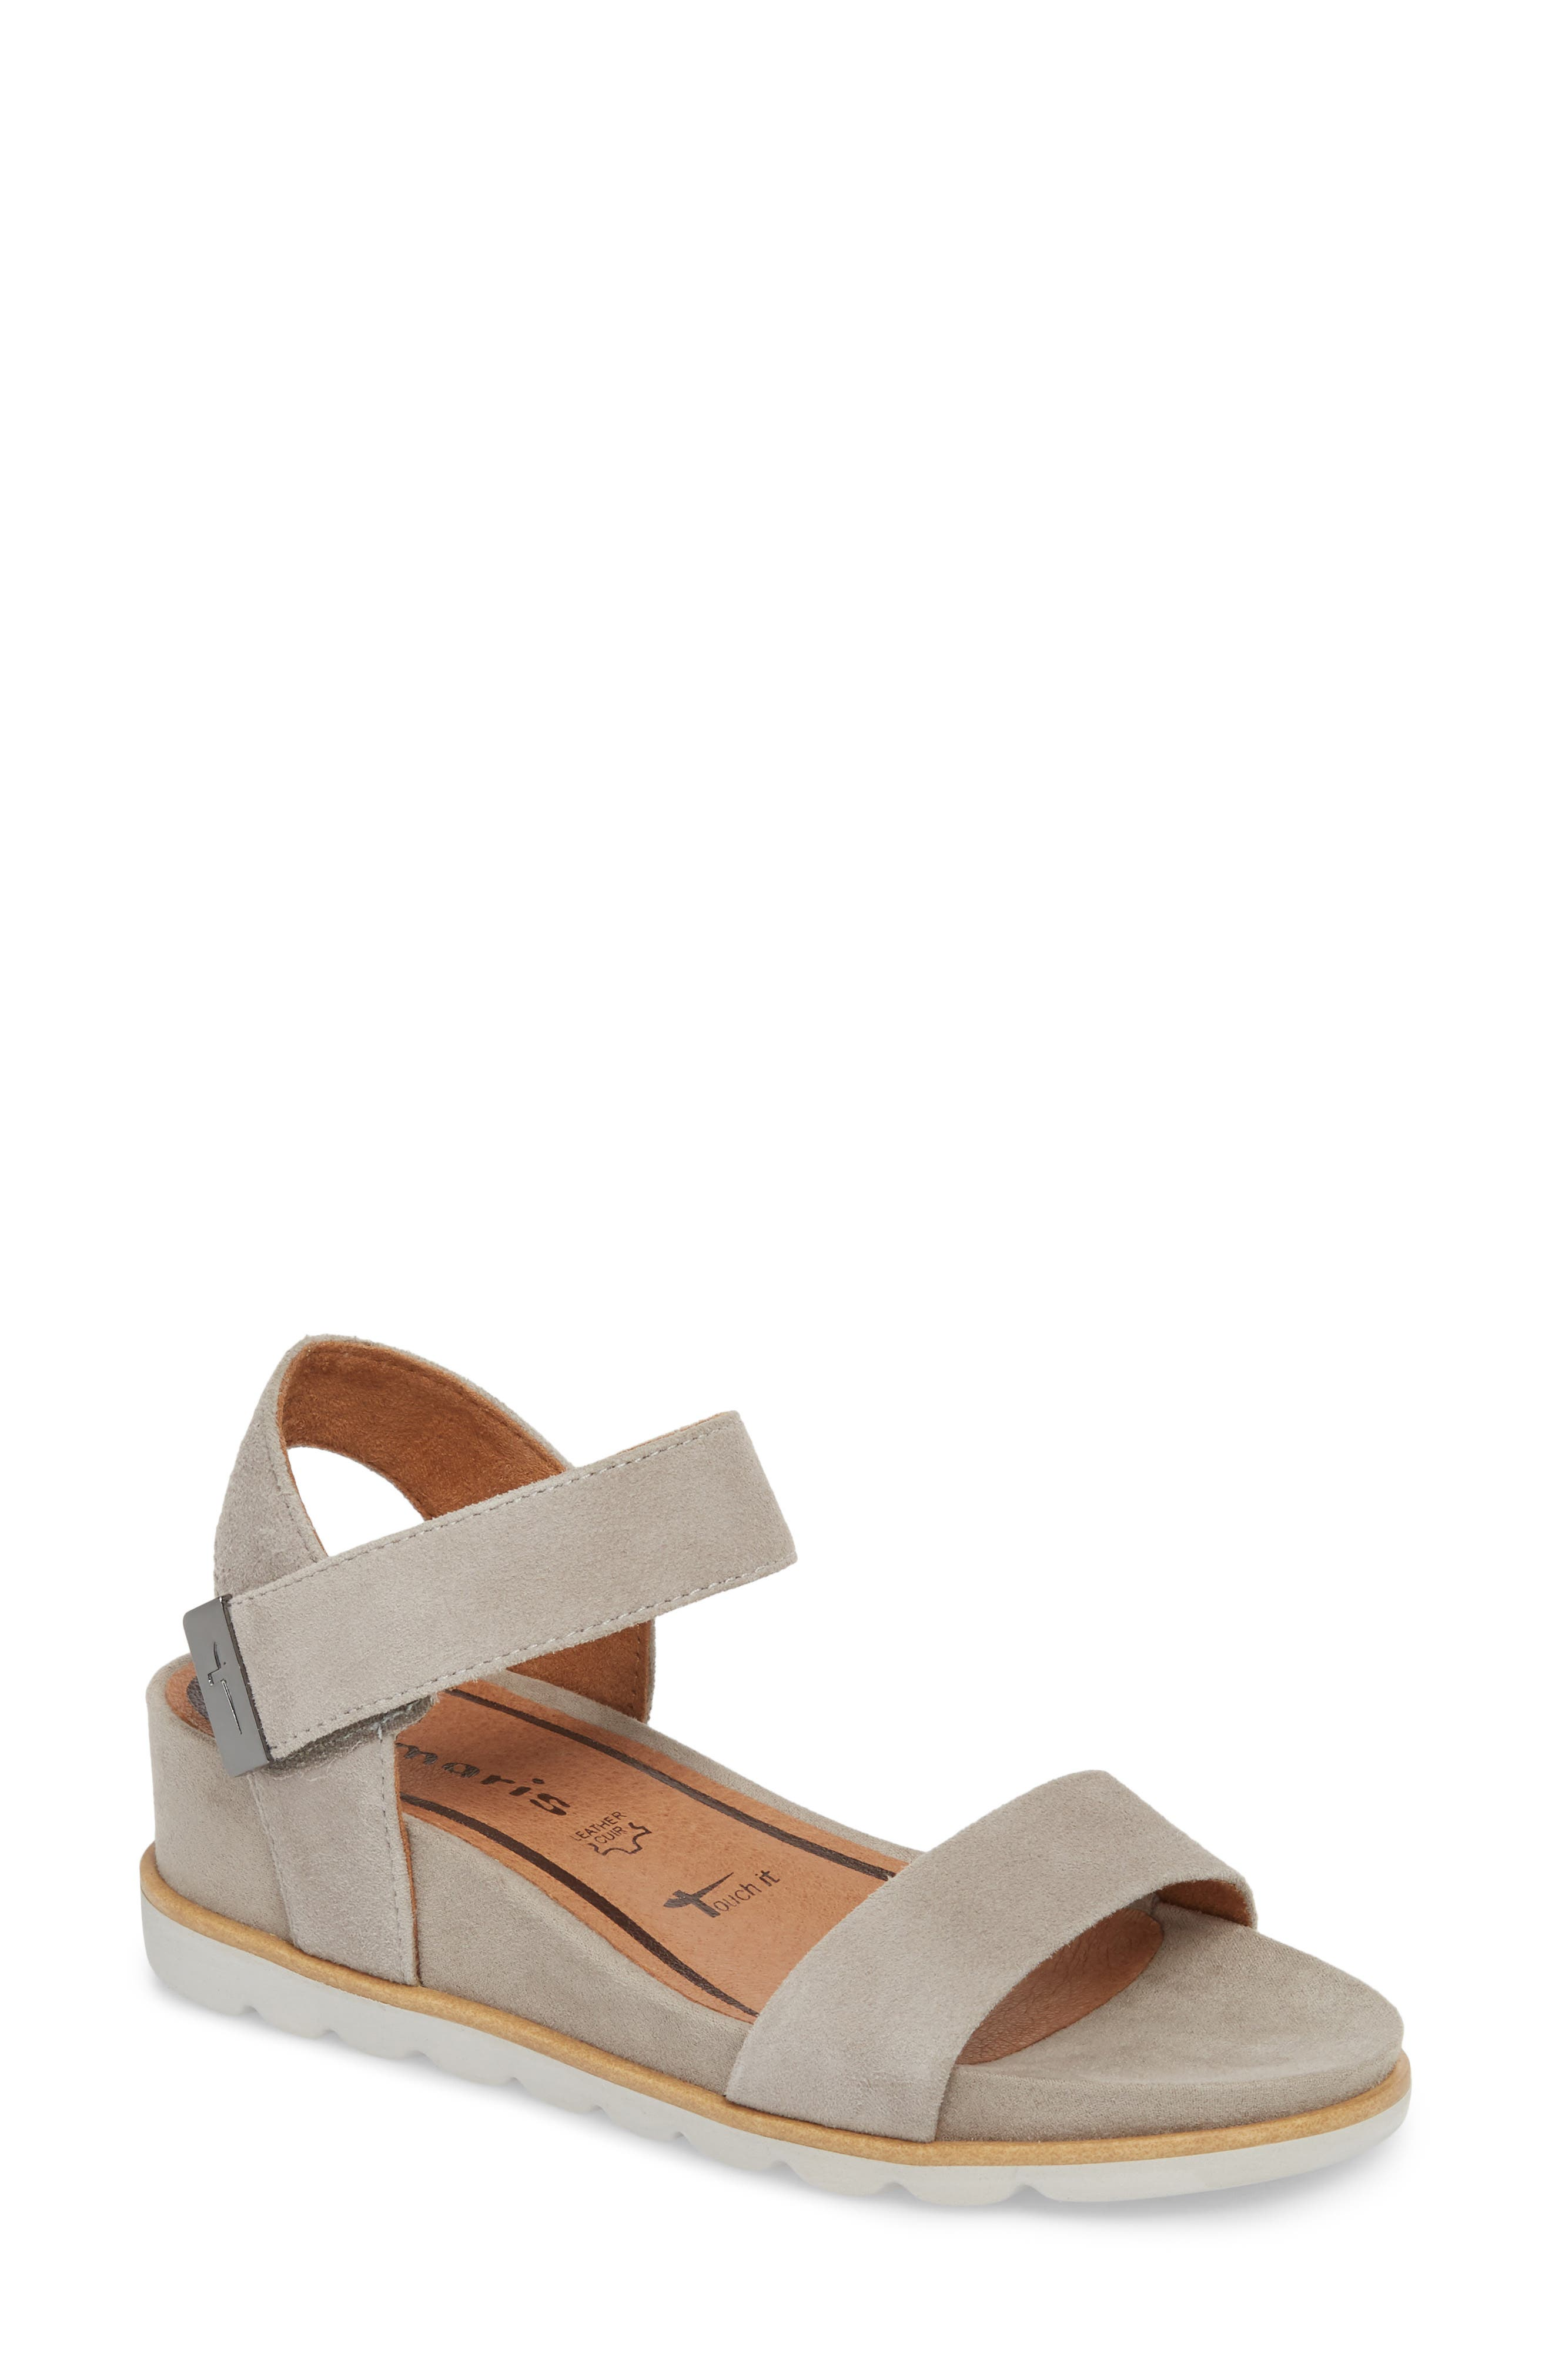 Cory Wedge Sandal,                         Main,                         color, Cloud Suede